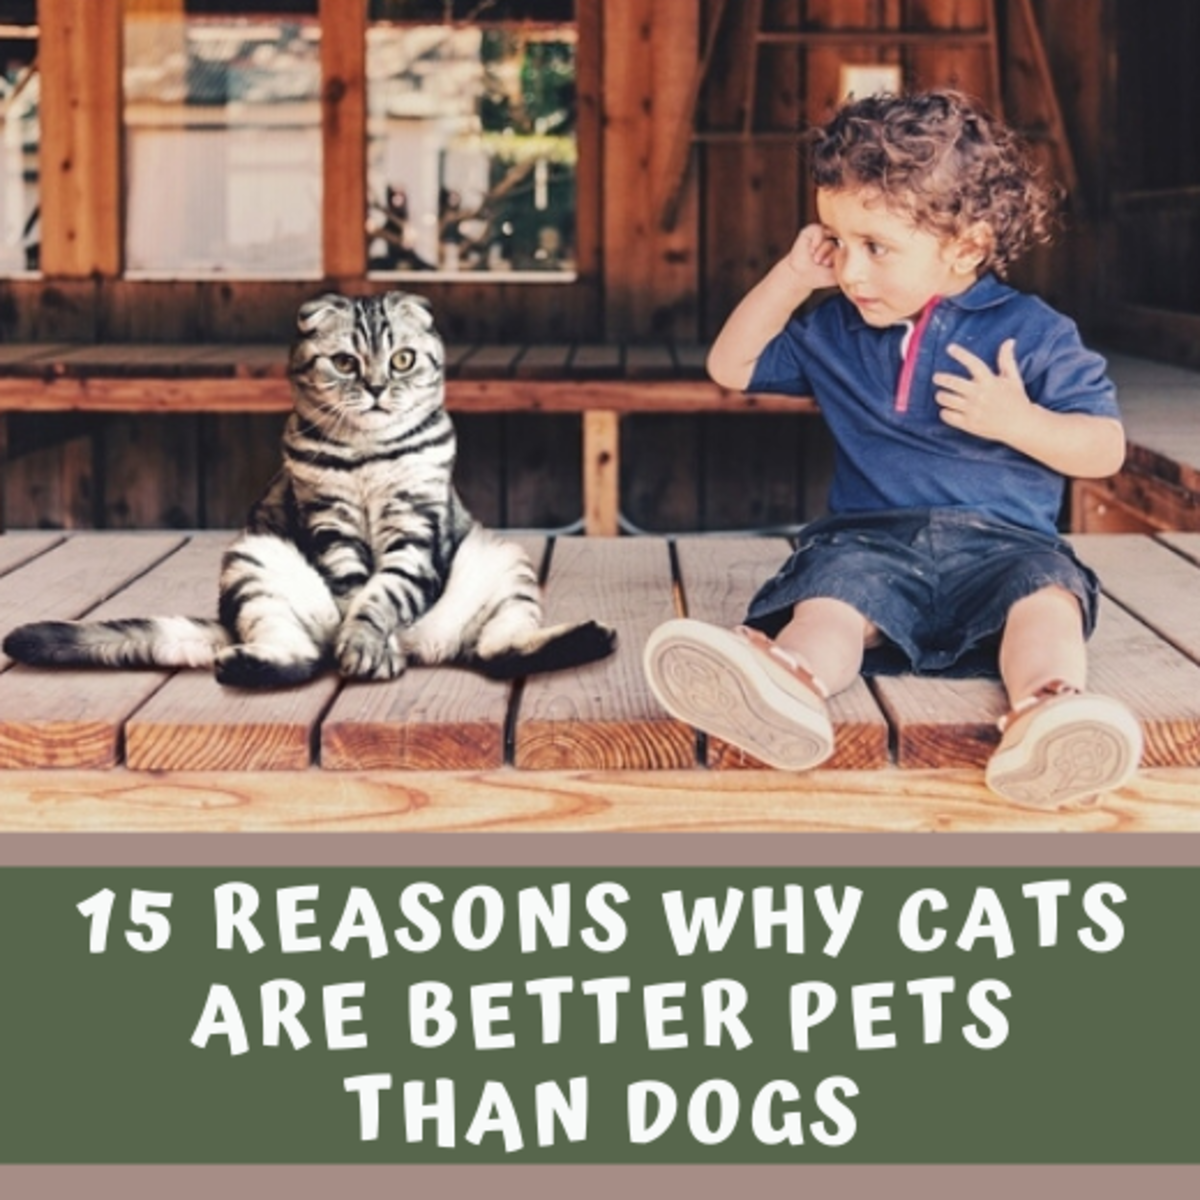 15 Reasons Why Cats Are Better Pets Than Dogs